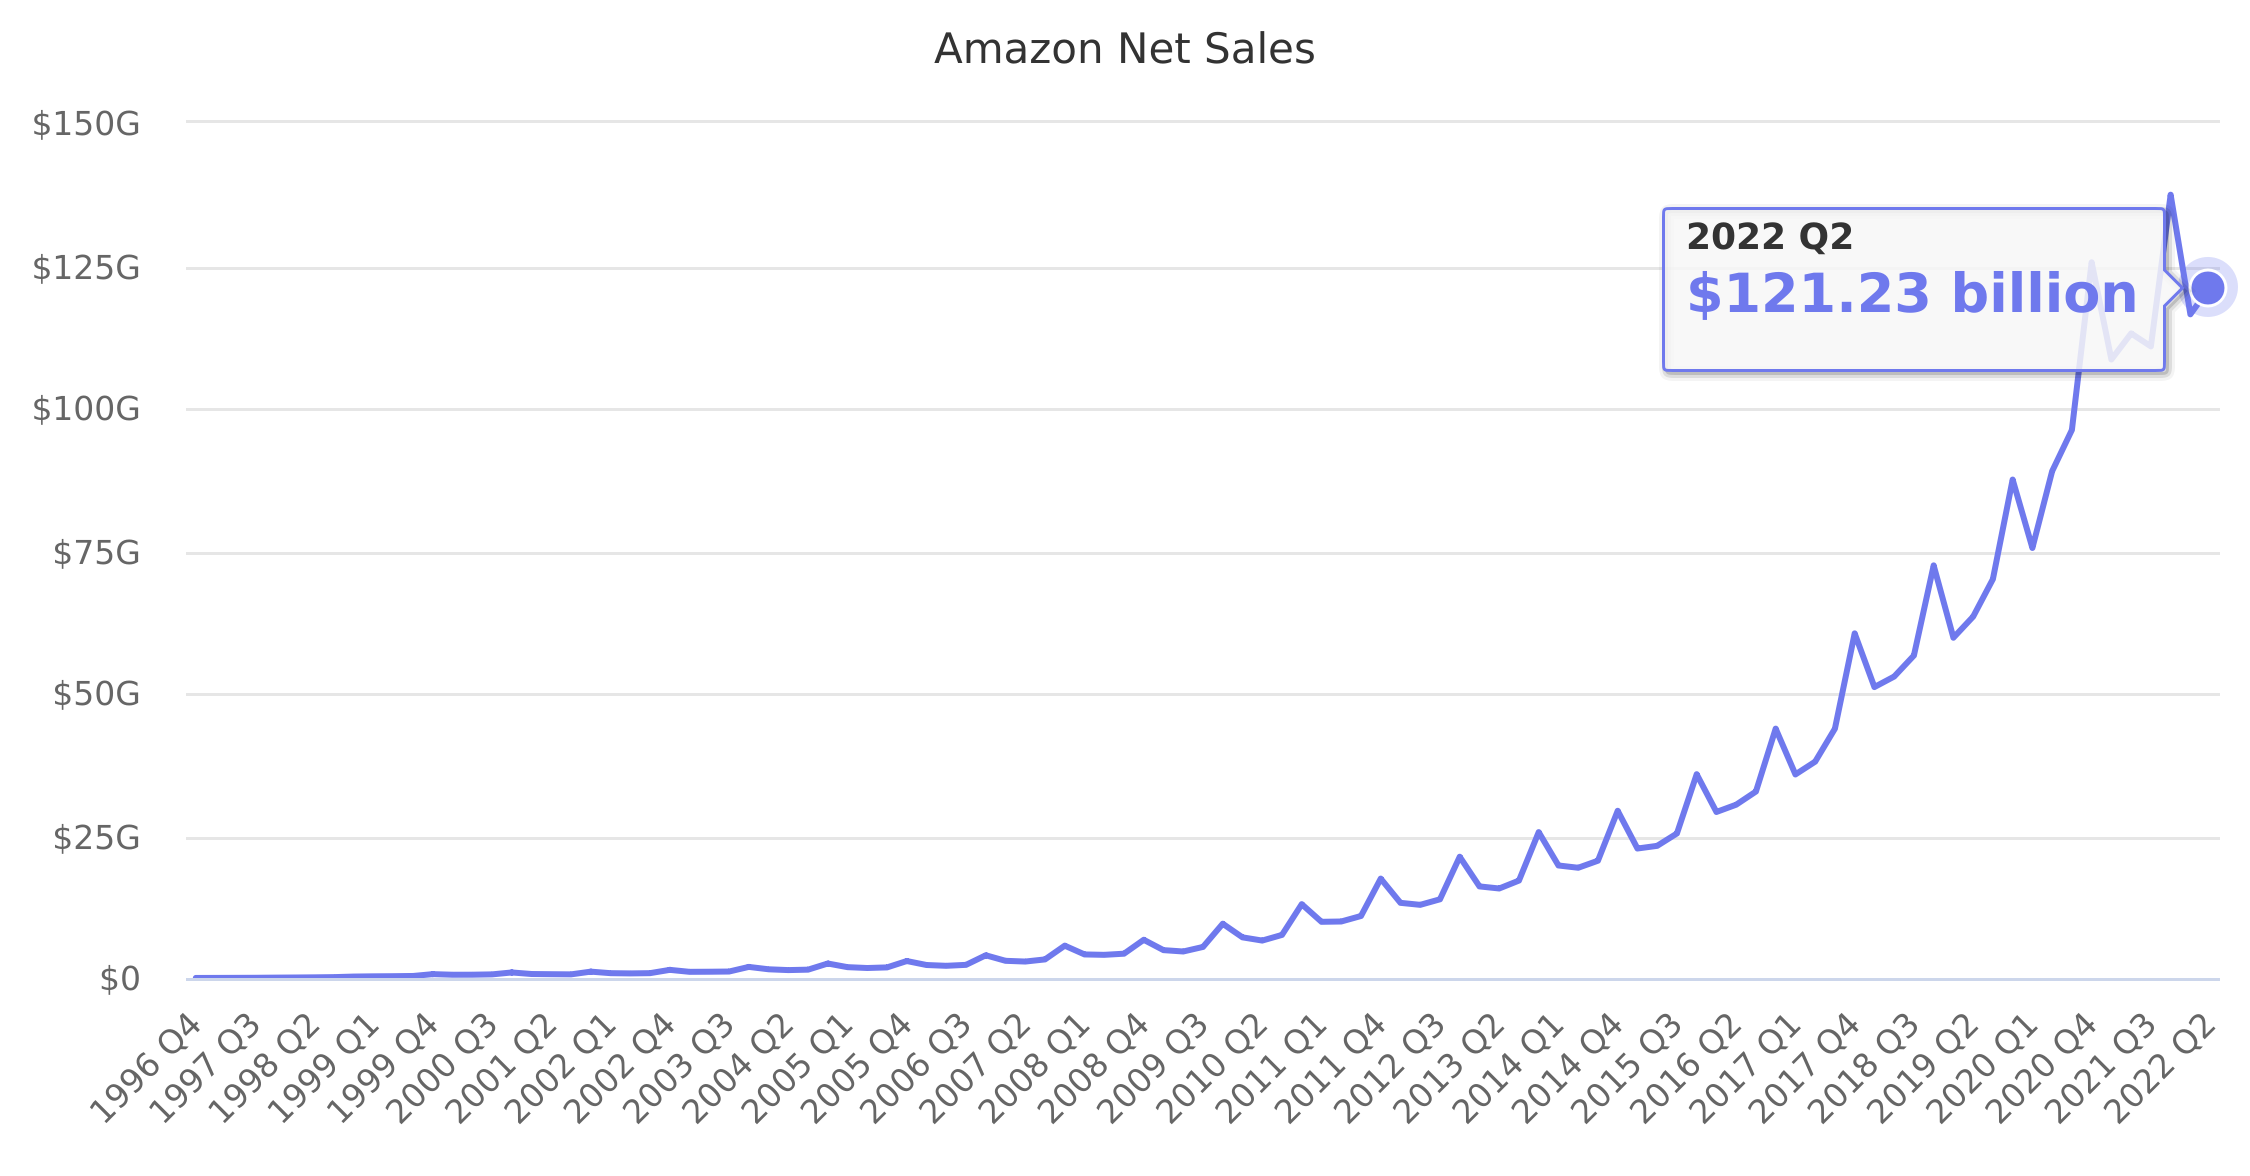 Amazon Net Sales 1996-2017